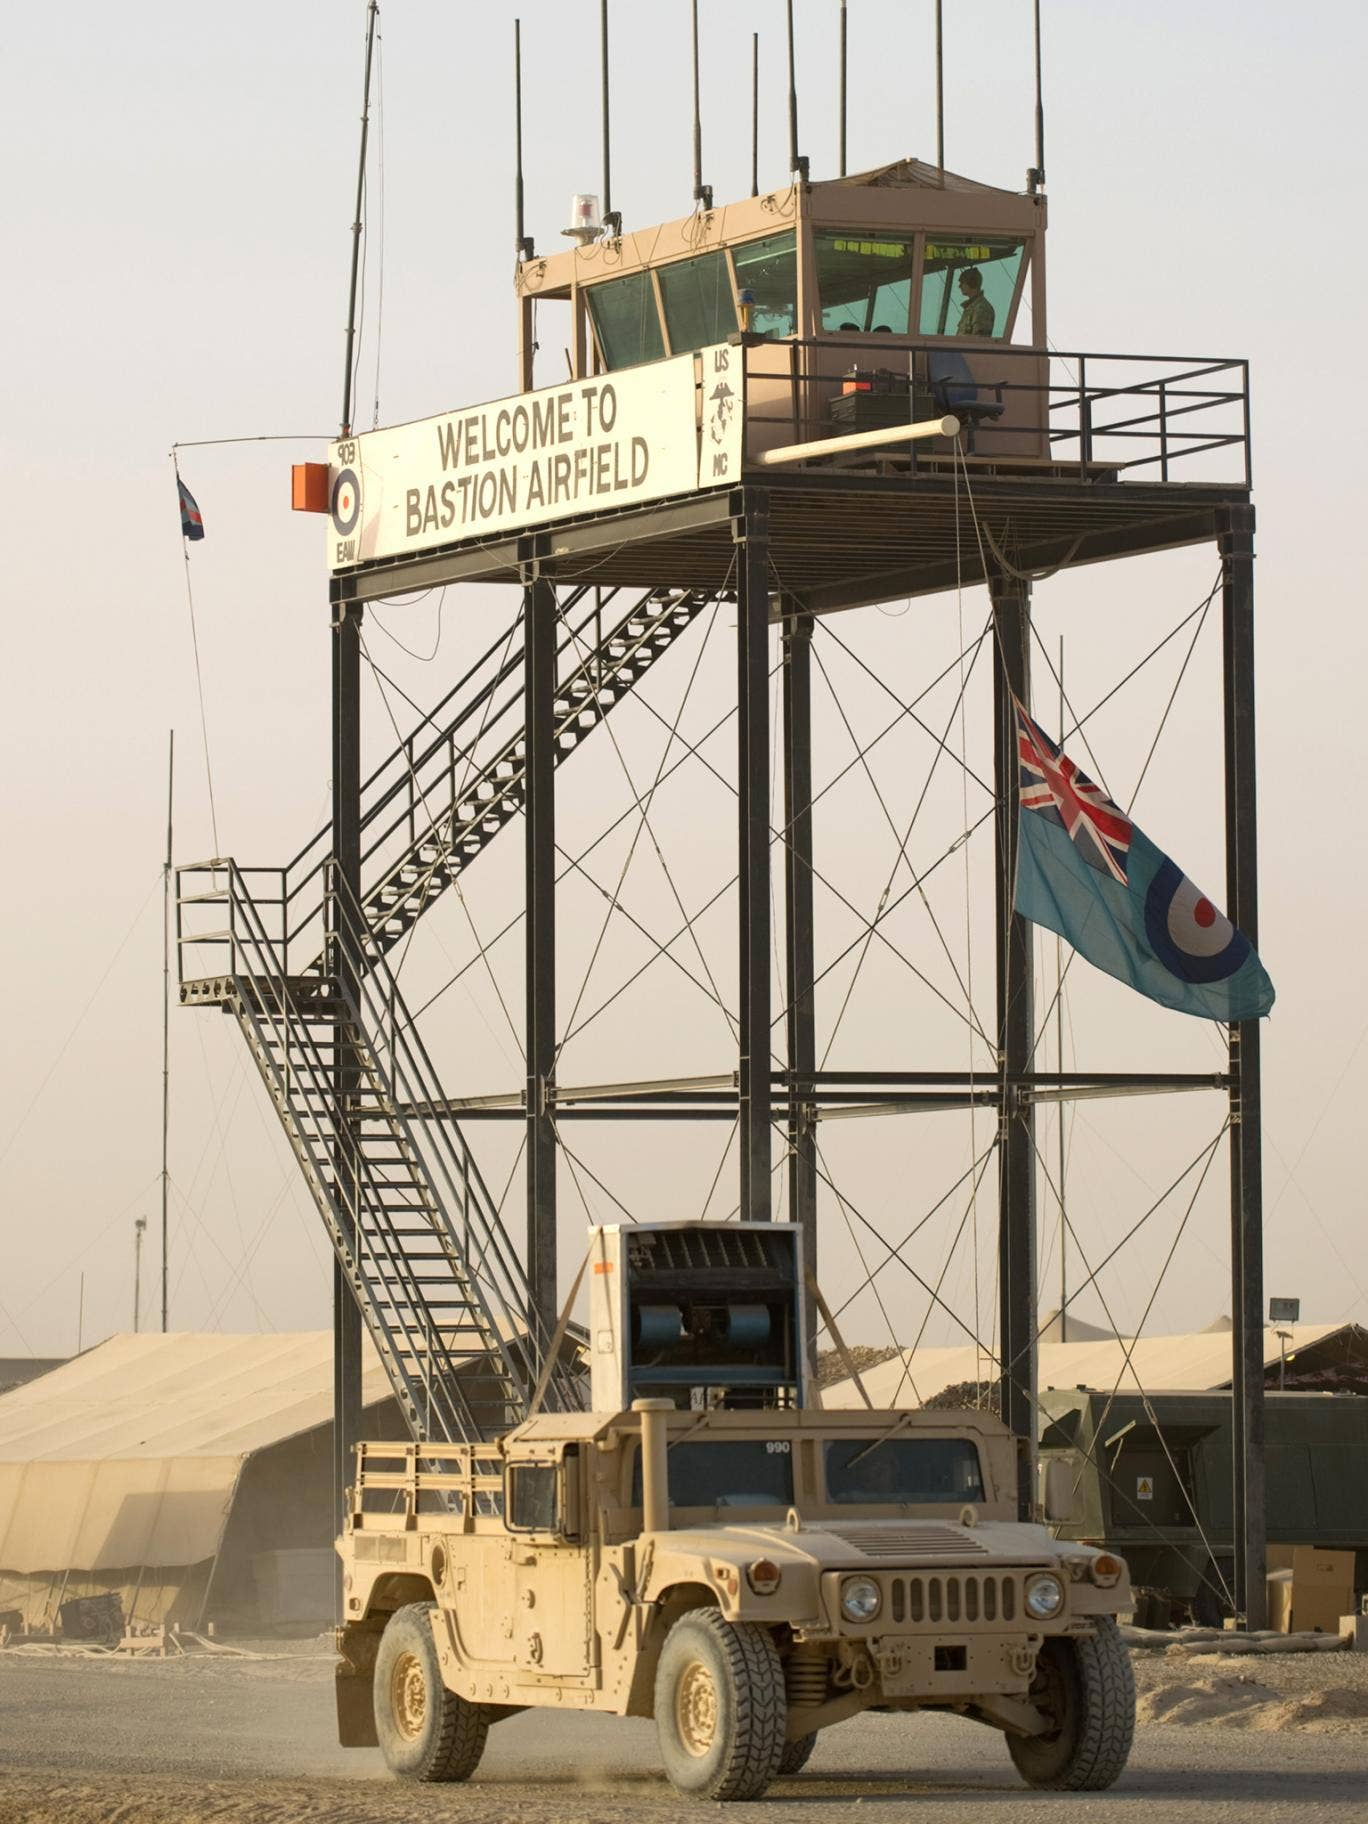 UK lawyers acting for eight of the men told the BBC their clients had been held for up to 14 months without charge at Camp Bastion